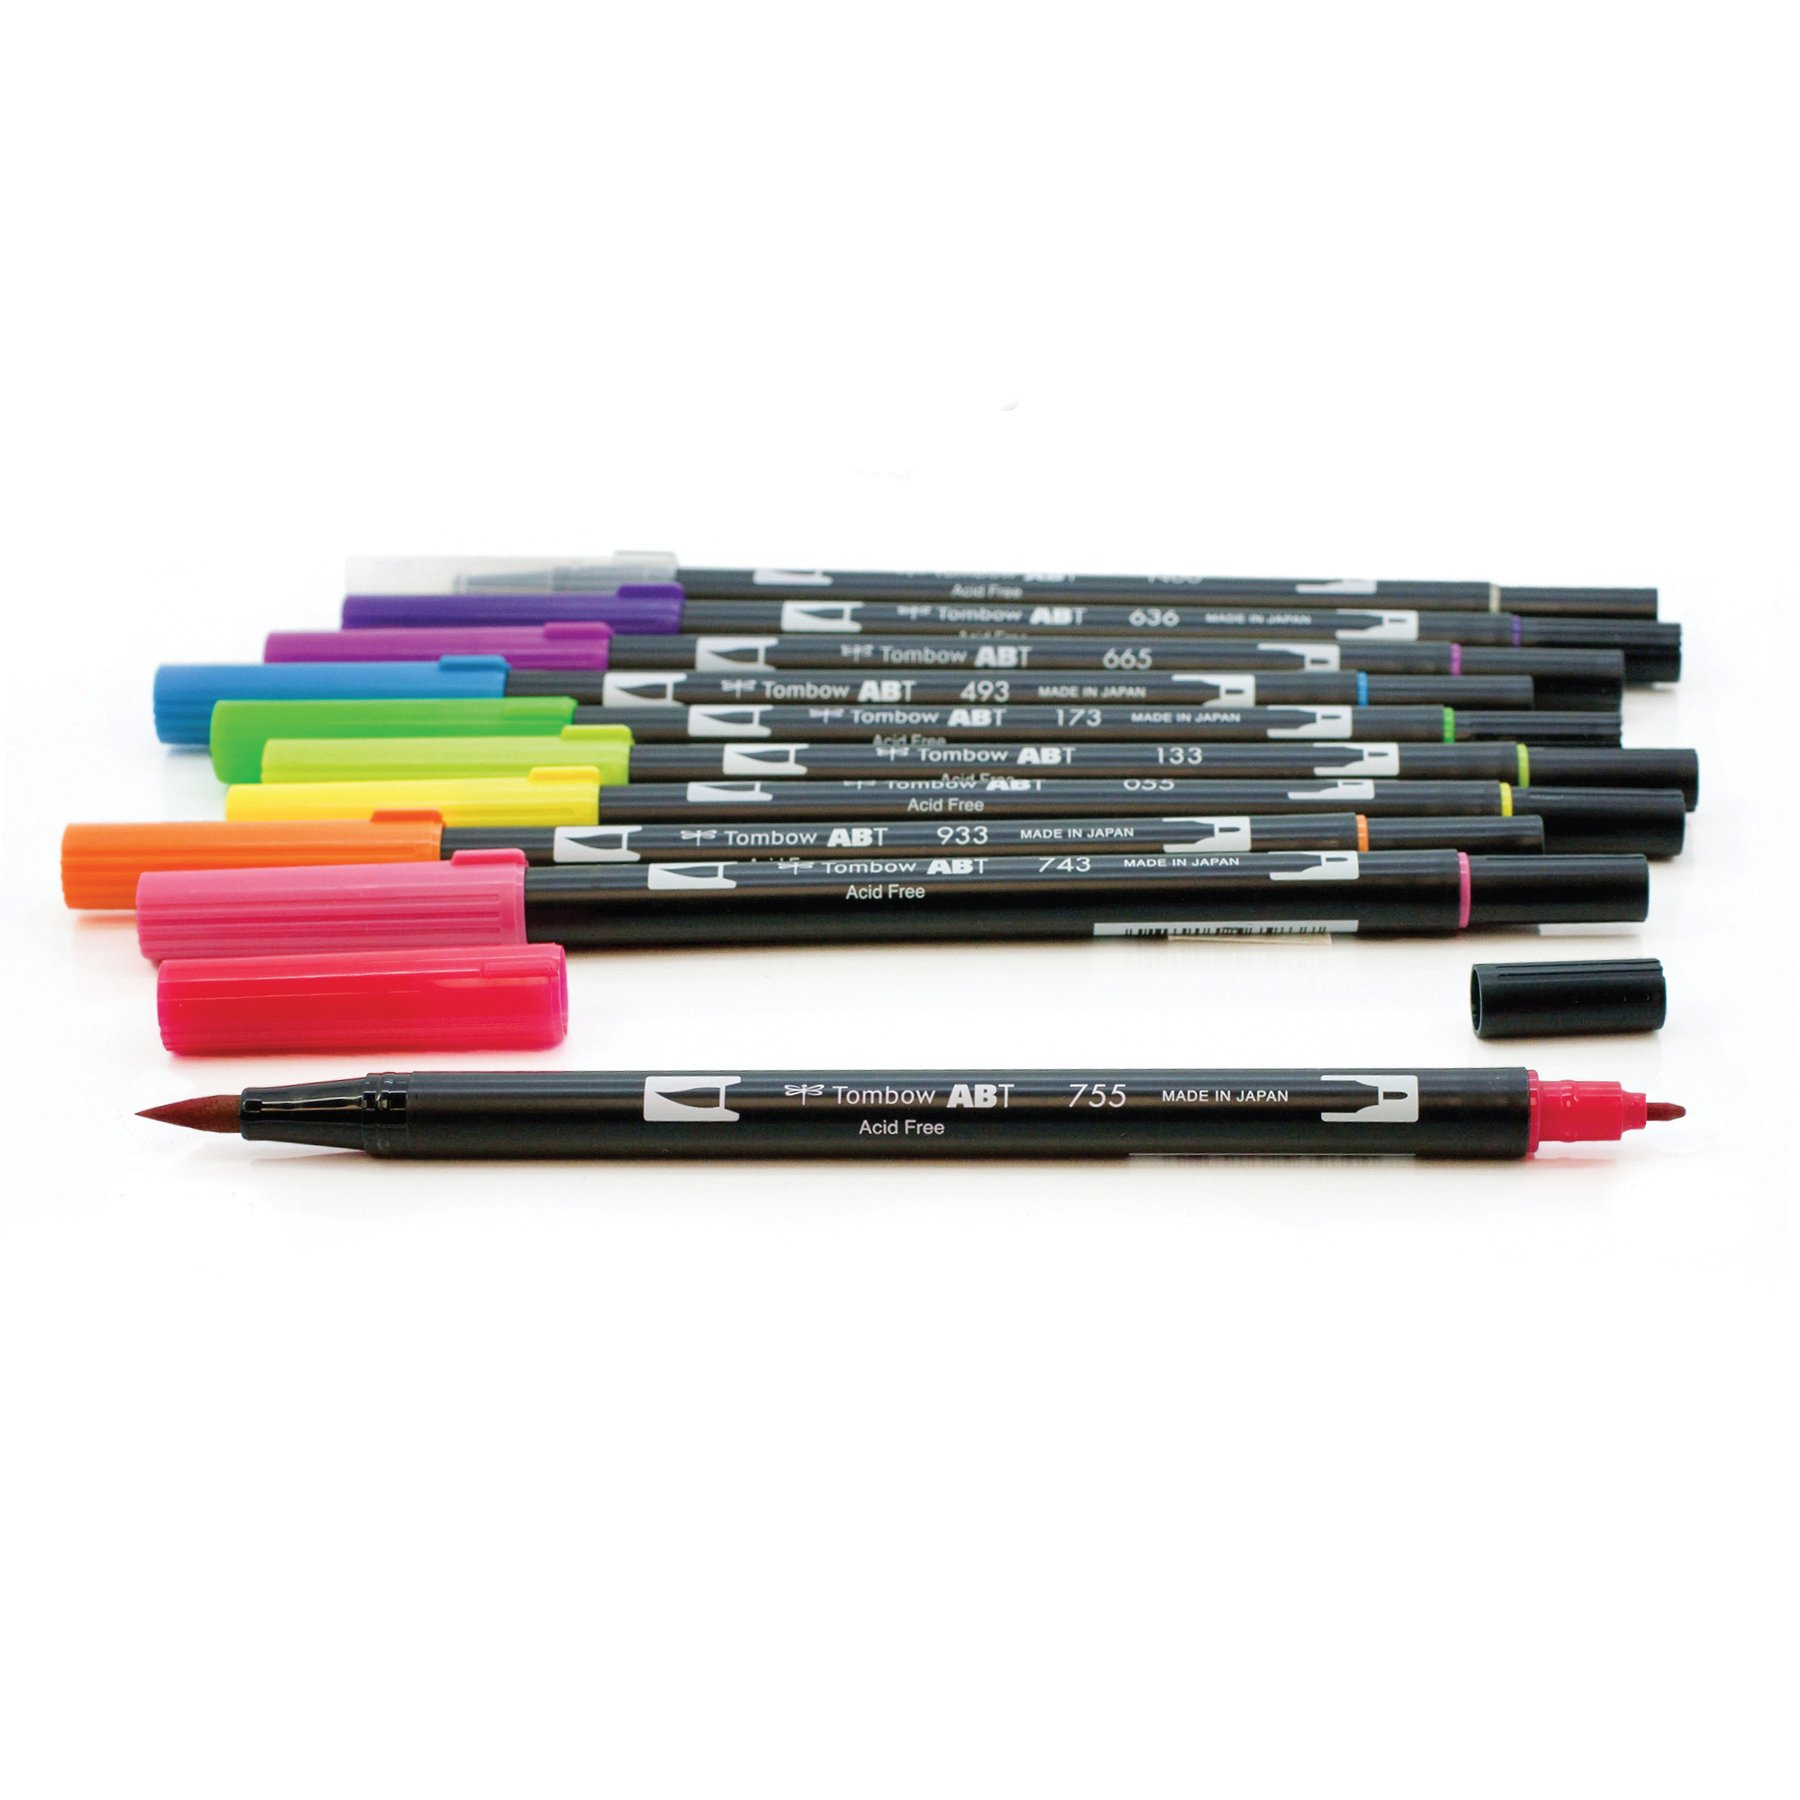 Tombow 56185 Dual Brush Pen Art Markers, Bright, 10-Pack. Blendable, Brush and Fine Tip Markers by Tombow (Image #1)